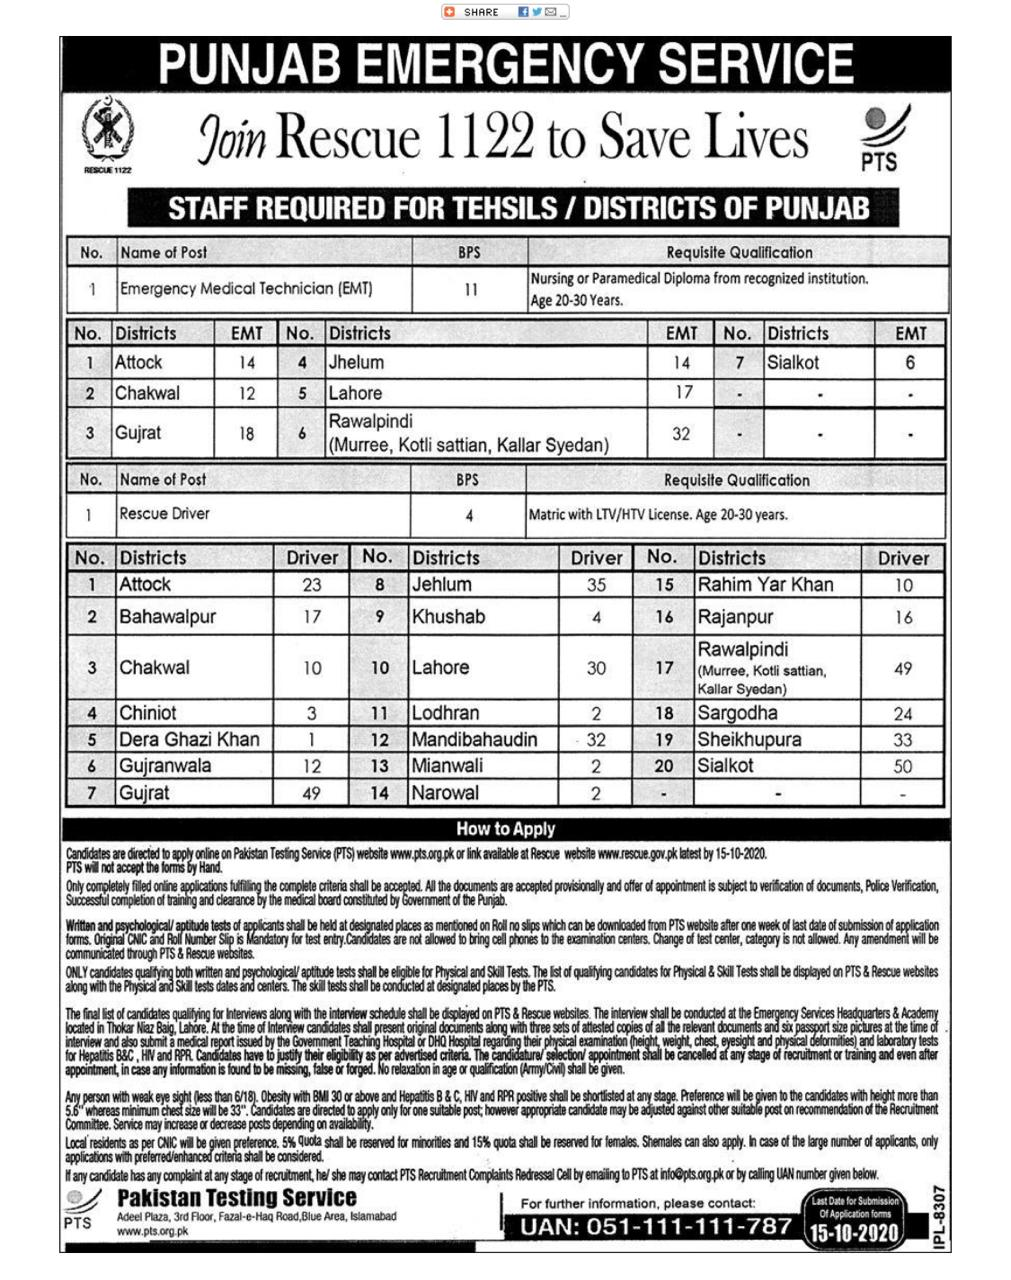 Rescue 1122 Latest Jobs Advertisement in Pakistan Via PTS - Apply Online - www.pts.org.pk